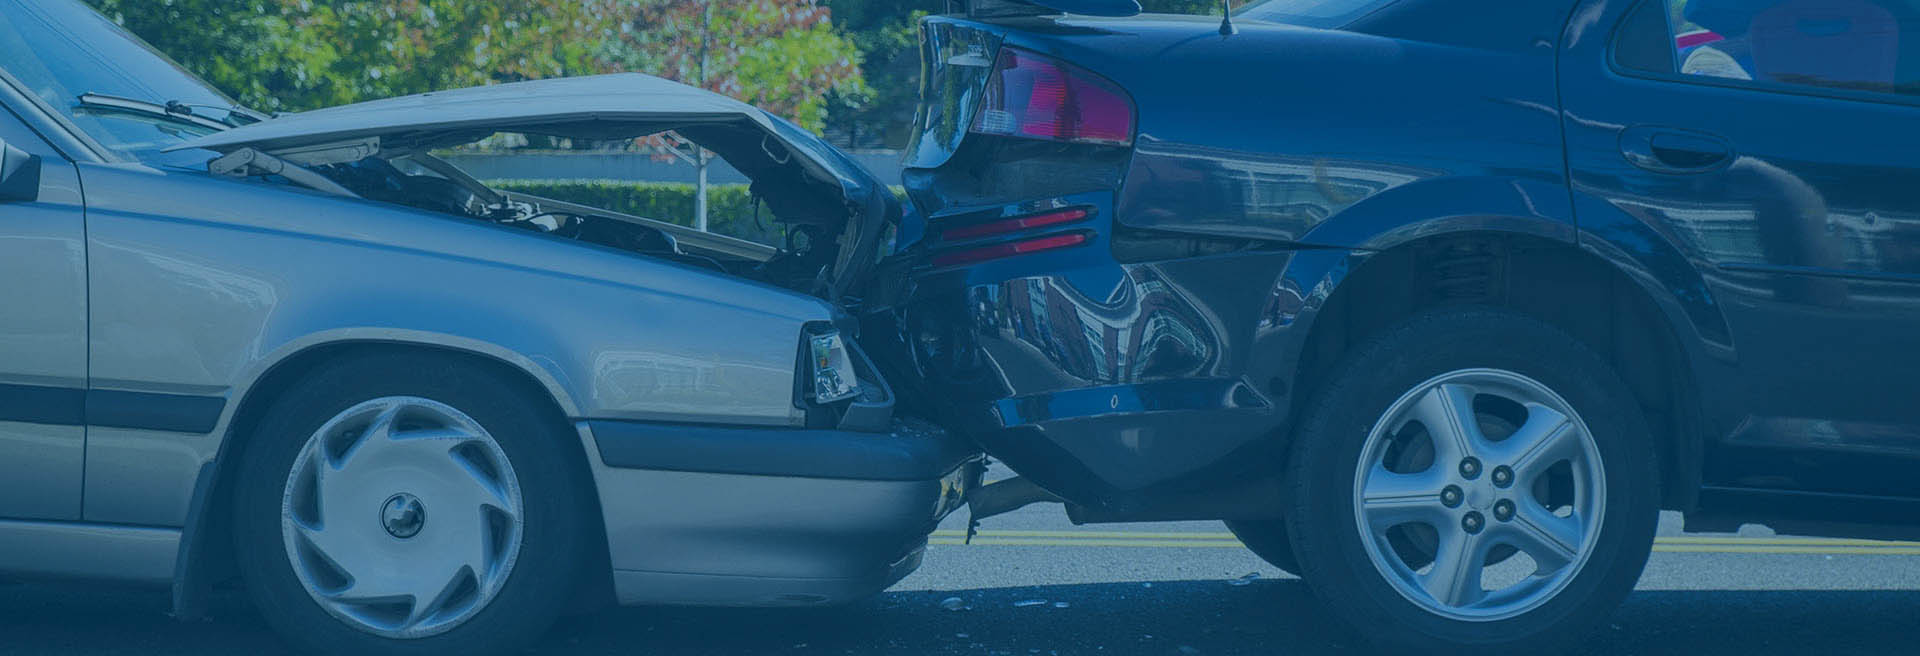 Auto Accidents - Banker's Hill Law Firm